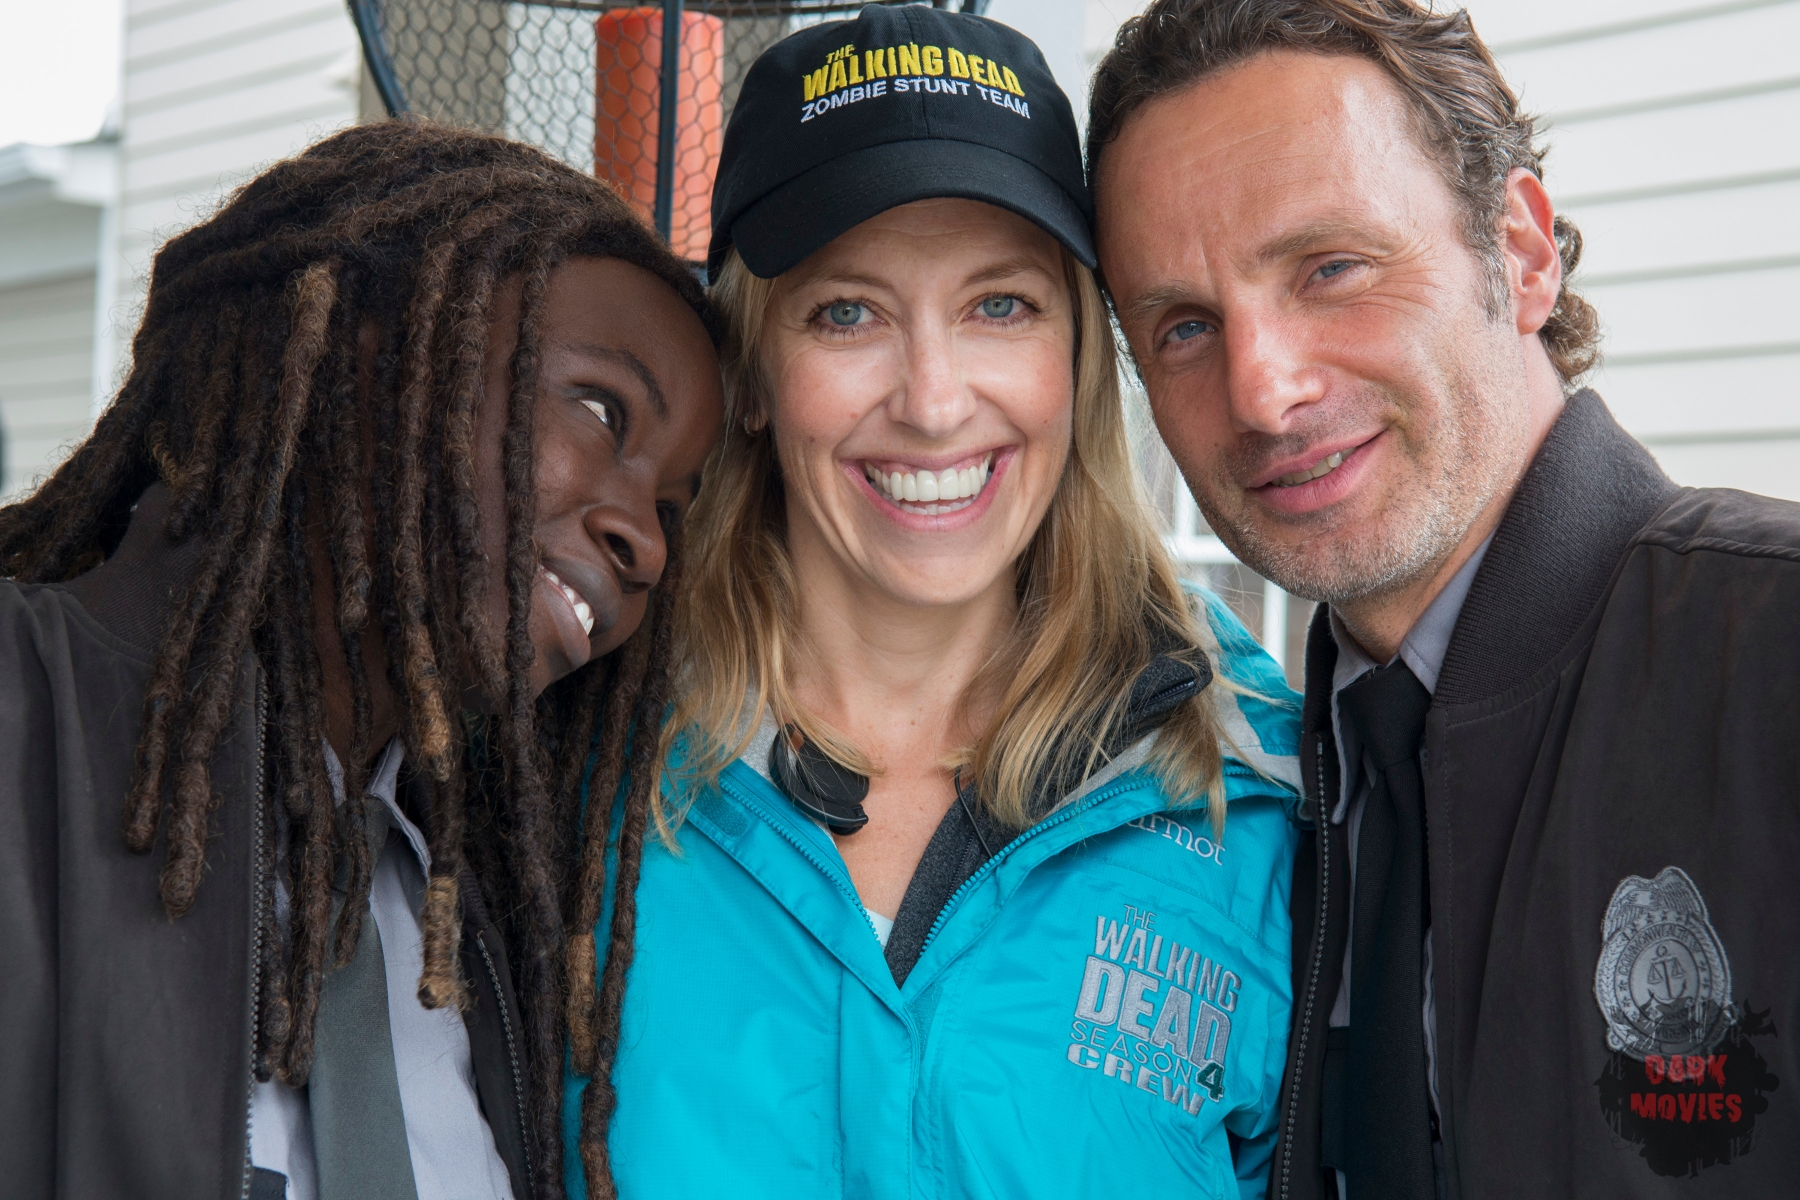 Danai Gurira, Denise Huth and Andrew Lincoln - The Walking Dead _ Season 5, Episode 13 _ BTS - Photo Credit: Gene Page/AMC